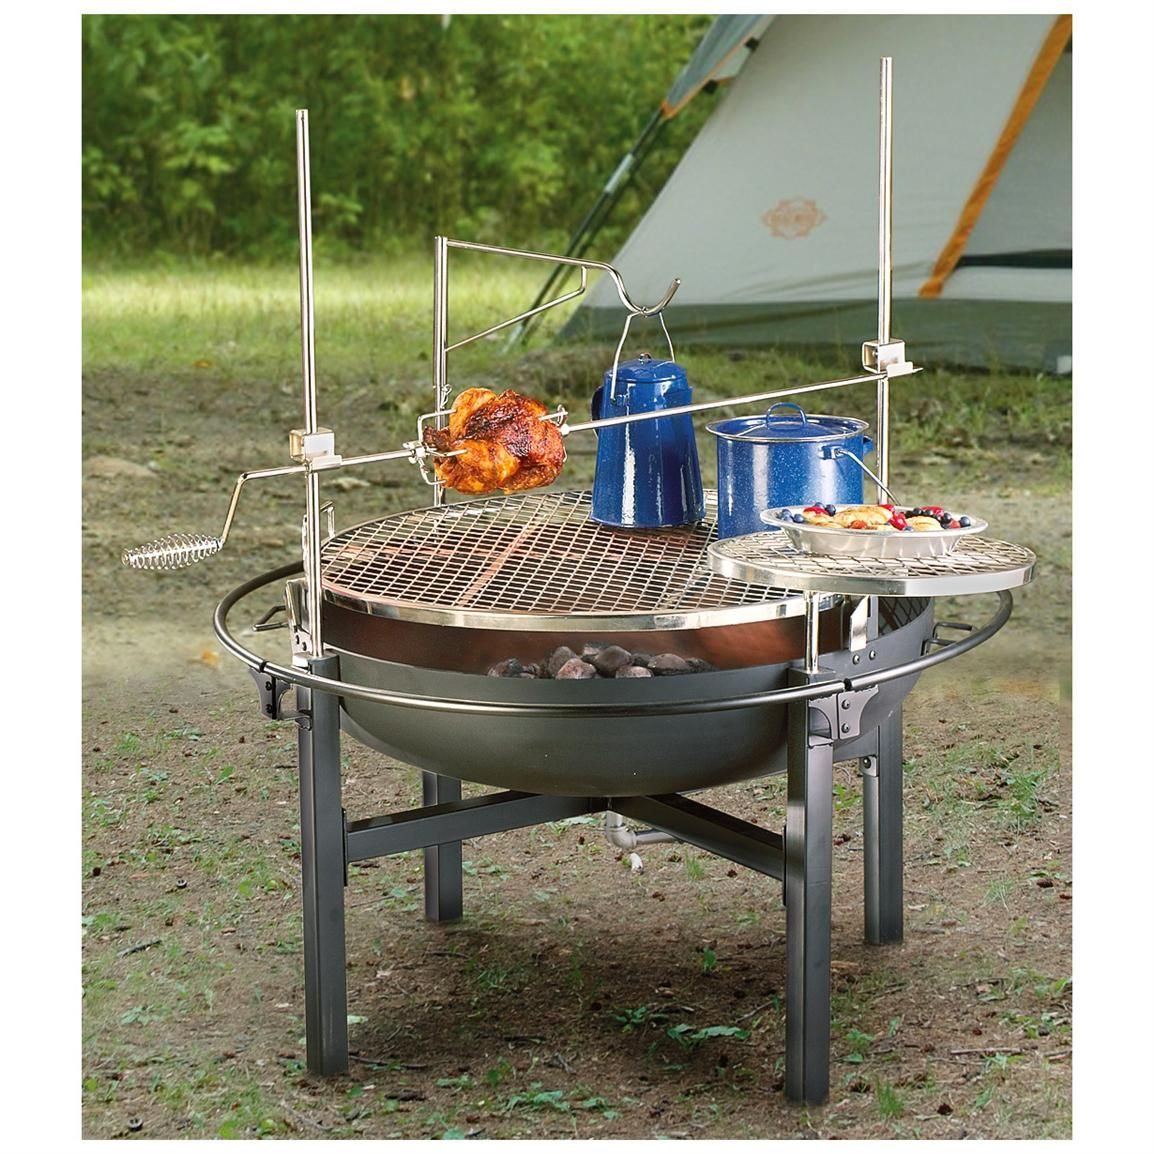 Cowboy Fire Pit Rotisserie/Grill delivers that savory, mmm good BBQ taste. - Cowboy Fire Pit Rotisserie/Grill Delivers That Savory, Mmm Good BBQ